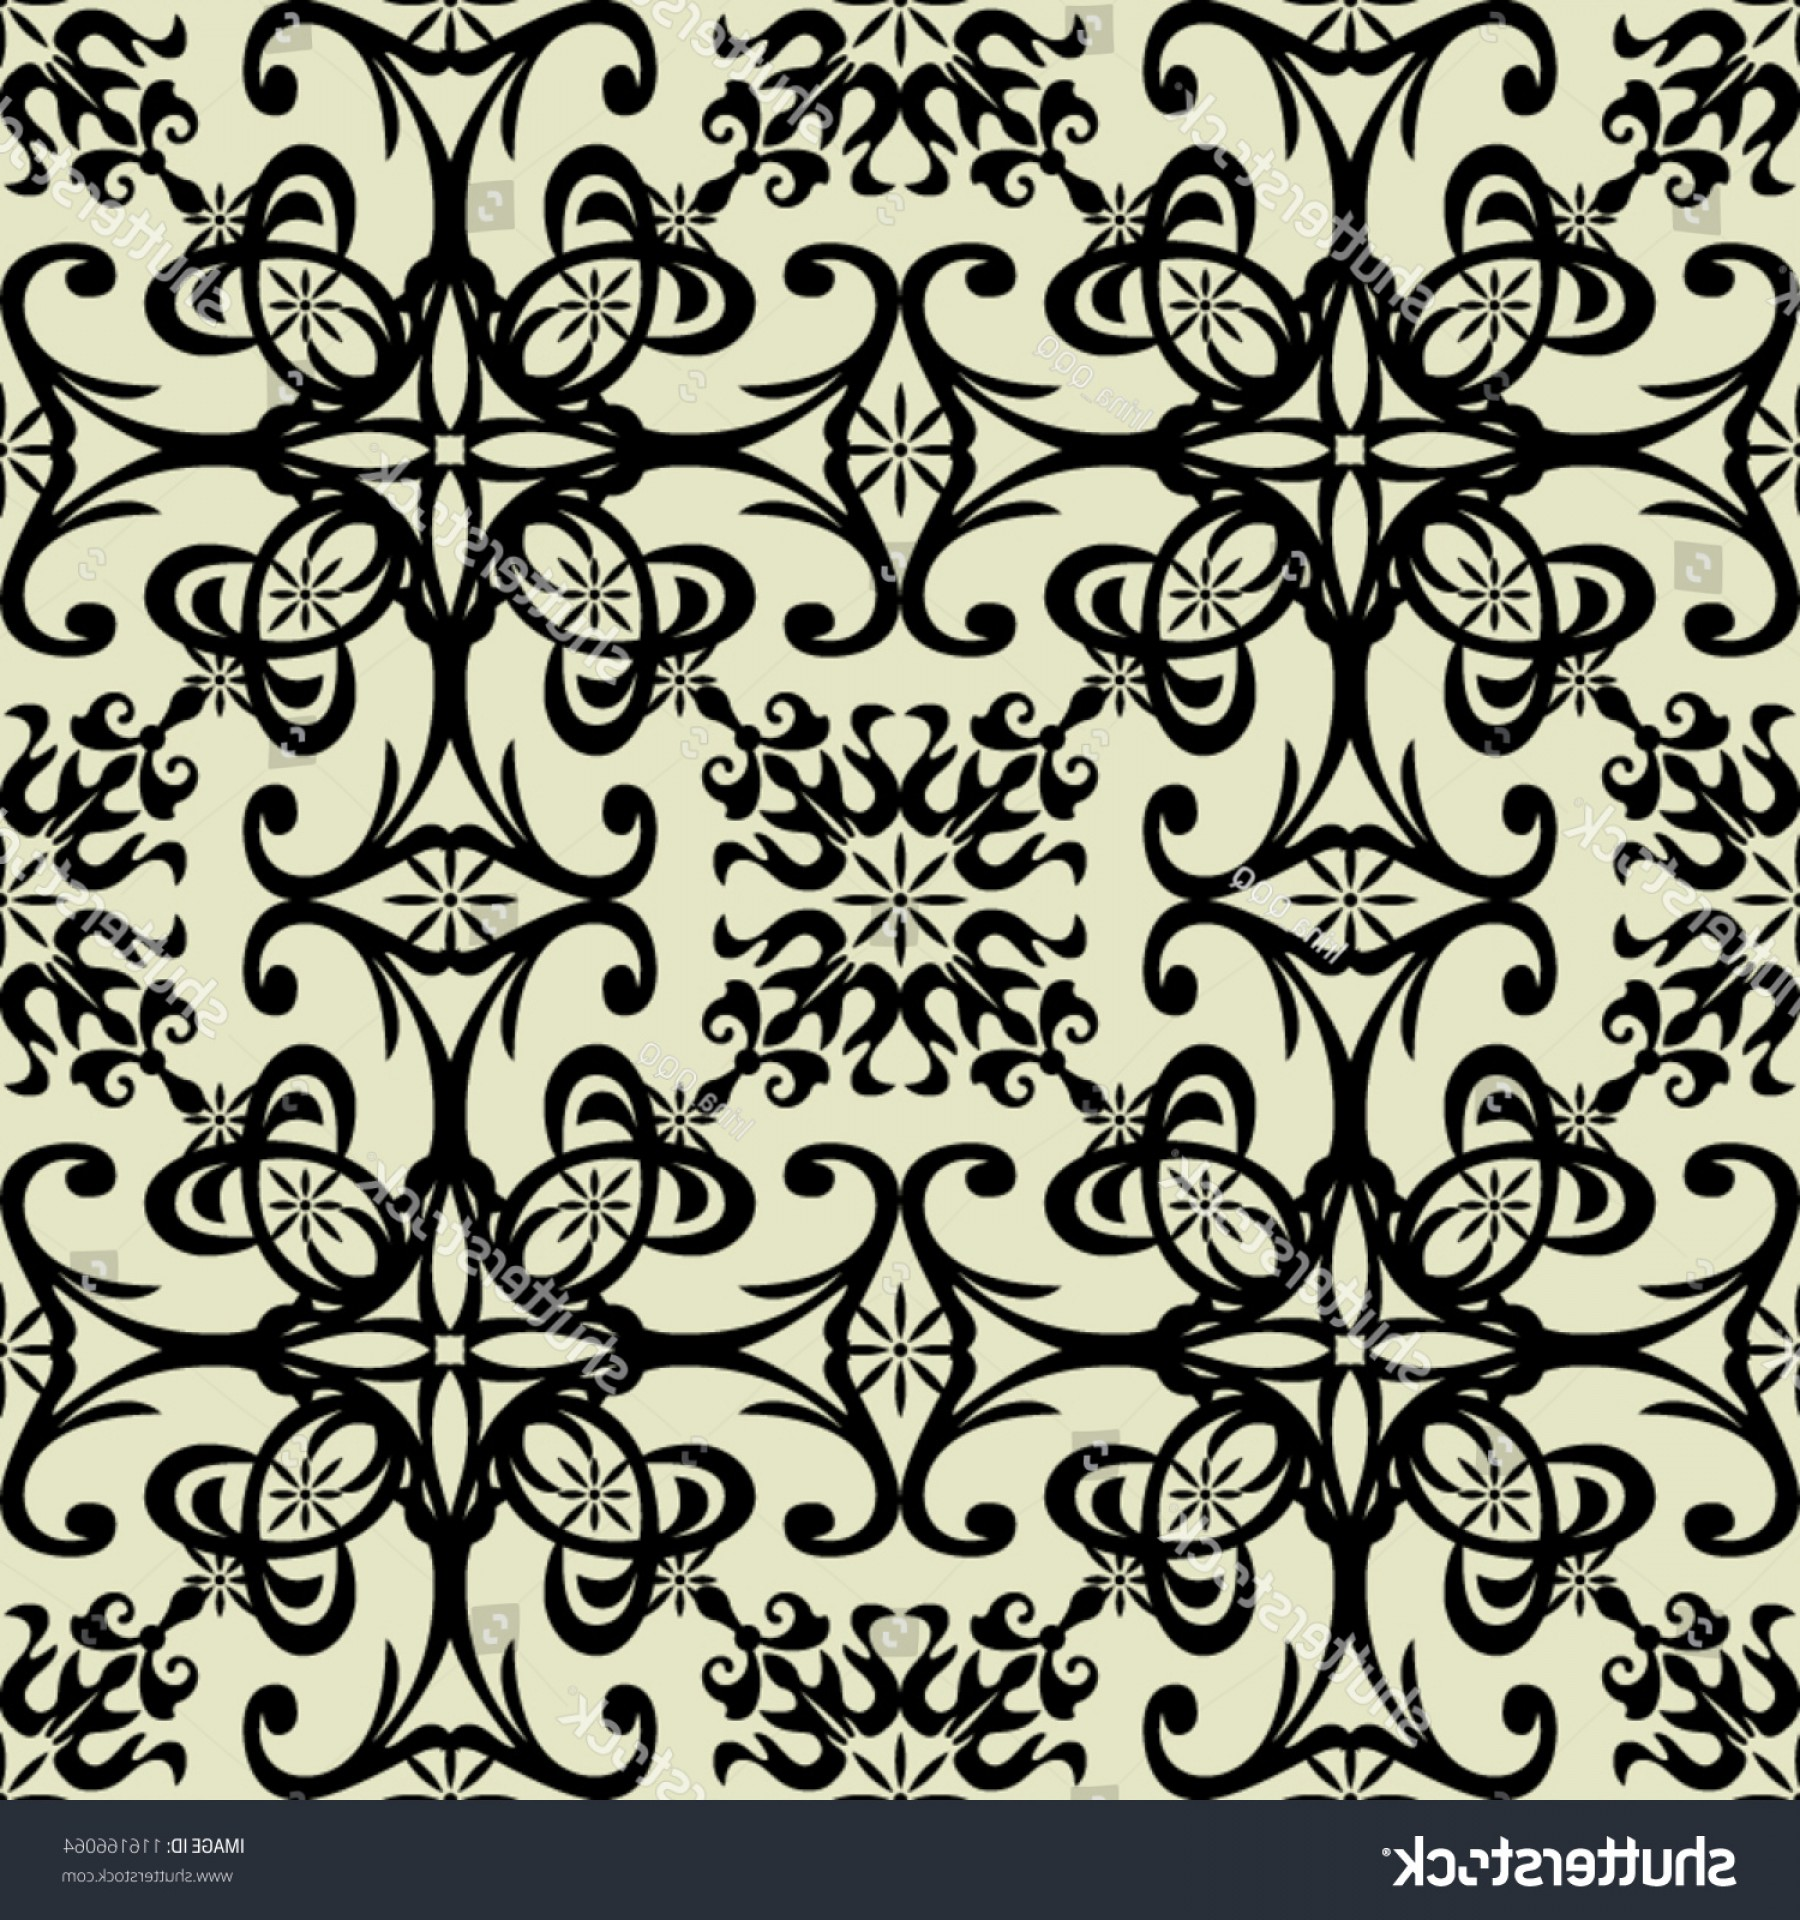 Damask Background Vector Art: Art Vintage Damask Pattern Background Vector